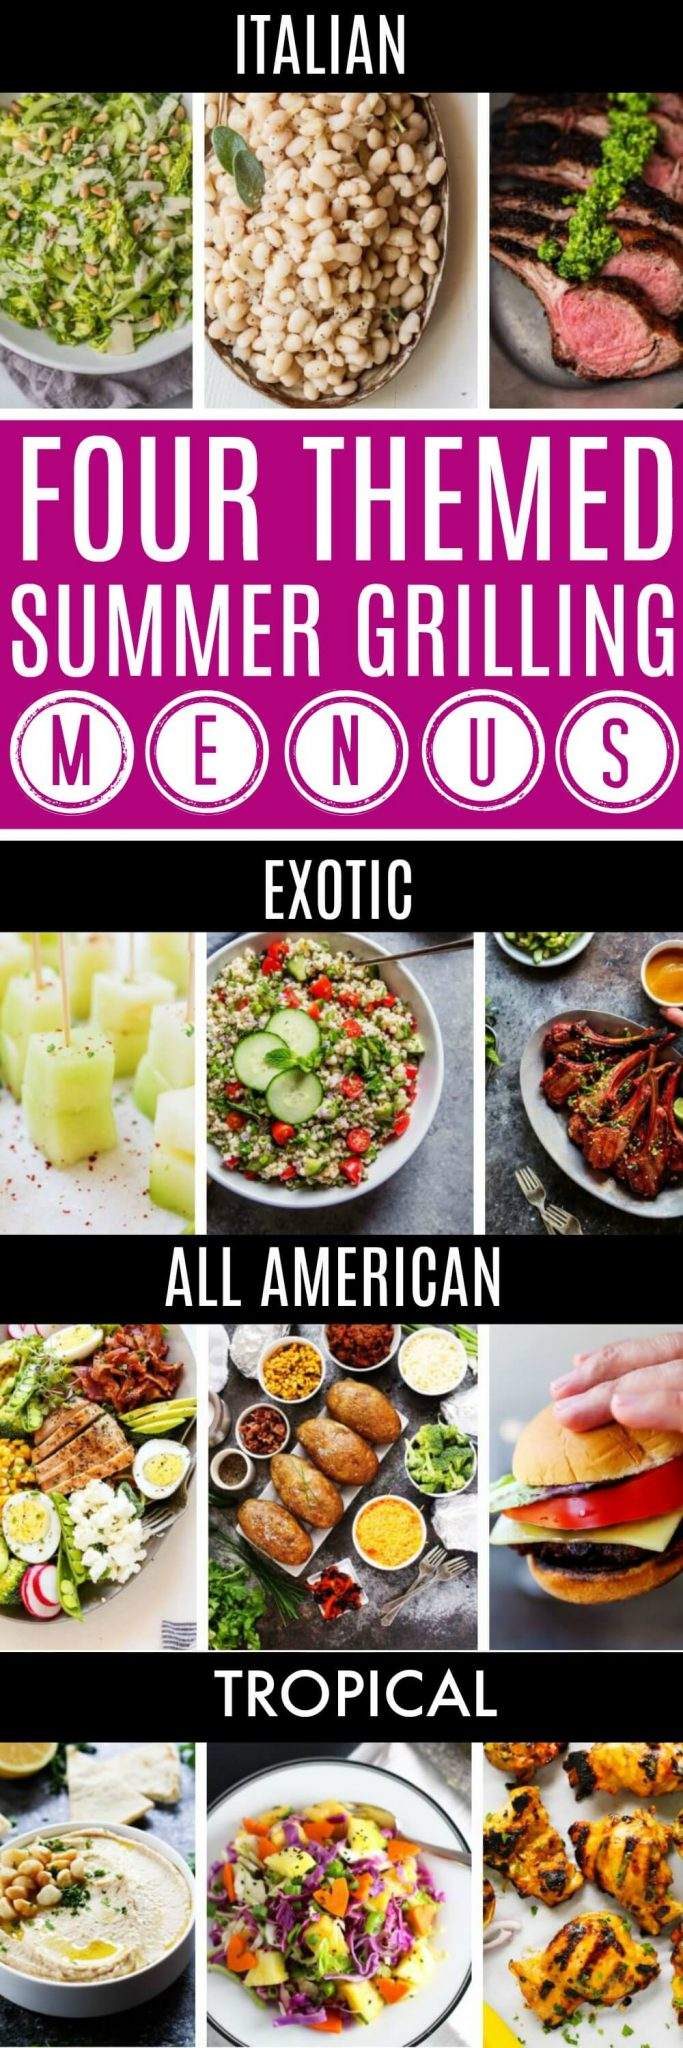 Four FUN Themed BBQ Grilling Menus - Italian, Exotic, American and Tropical. #grilling #bbq